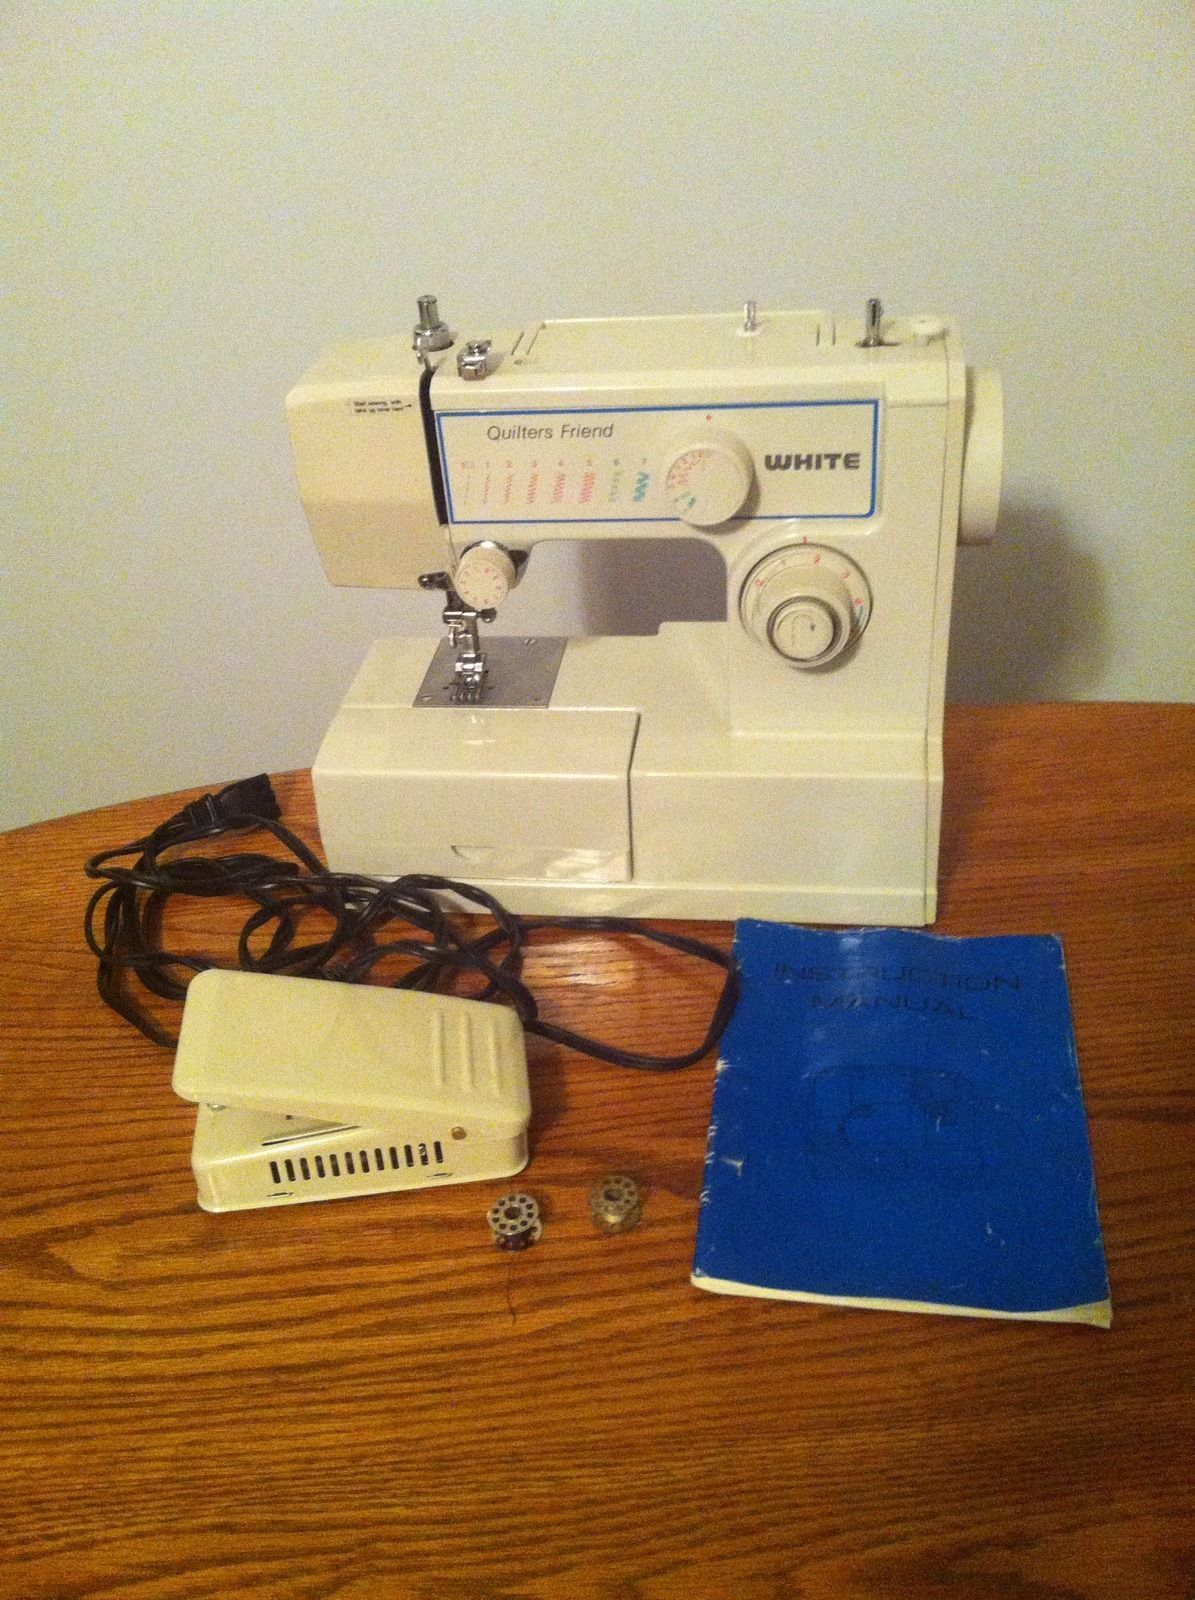 Quilters Friend White Sewing Machine Model 221N | eBay (also known as JC  General model